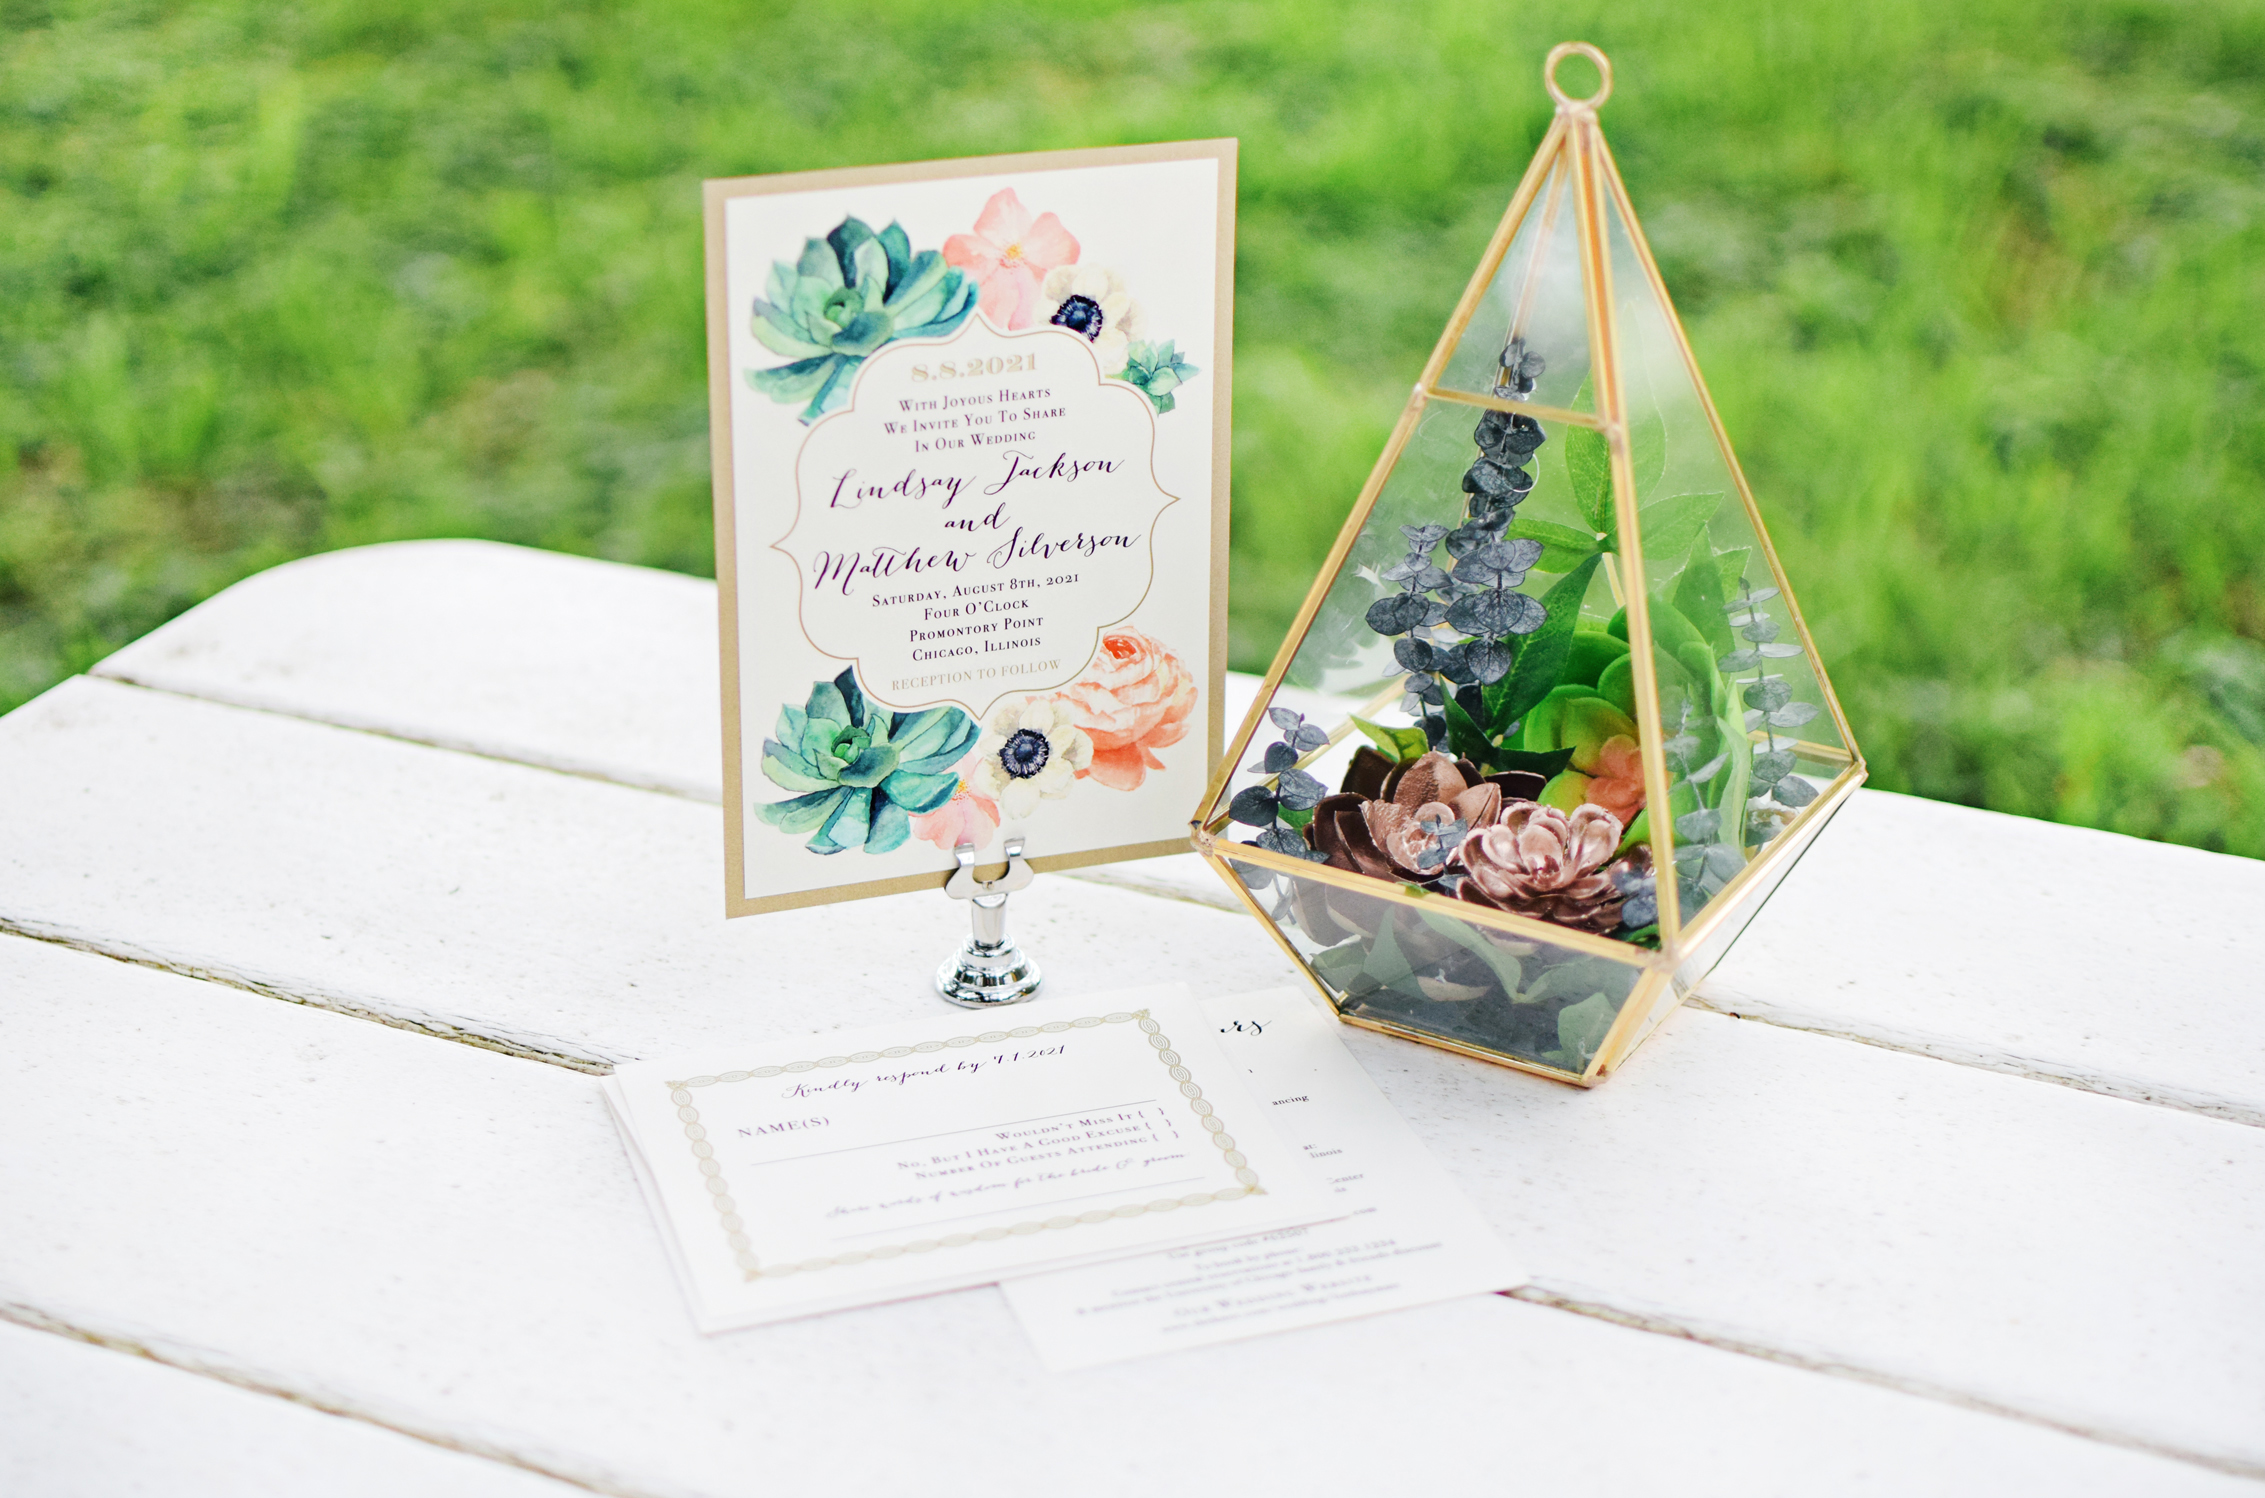 Diy Succulent Terrarium Centerpieces Beacon Lane Blog